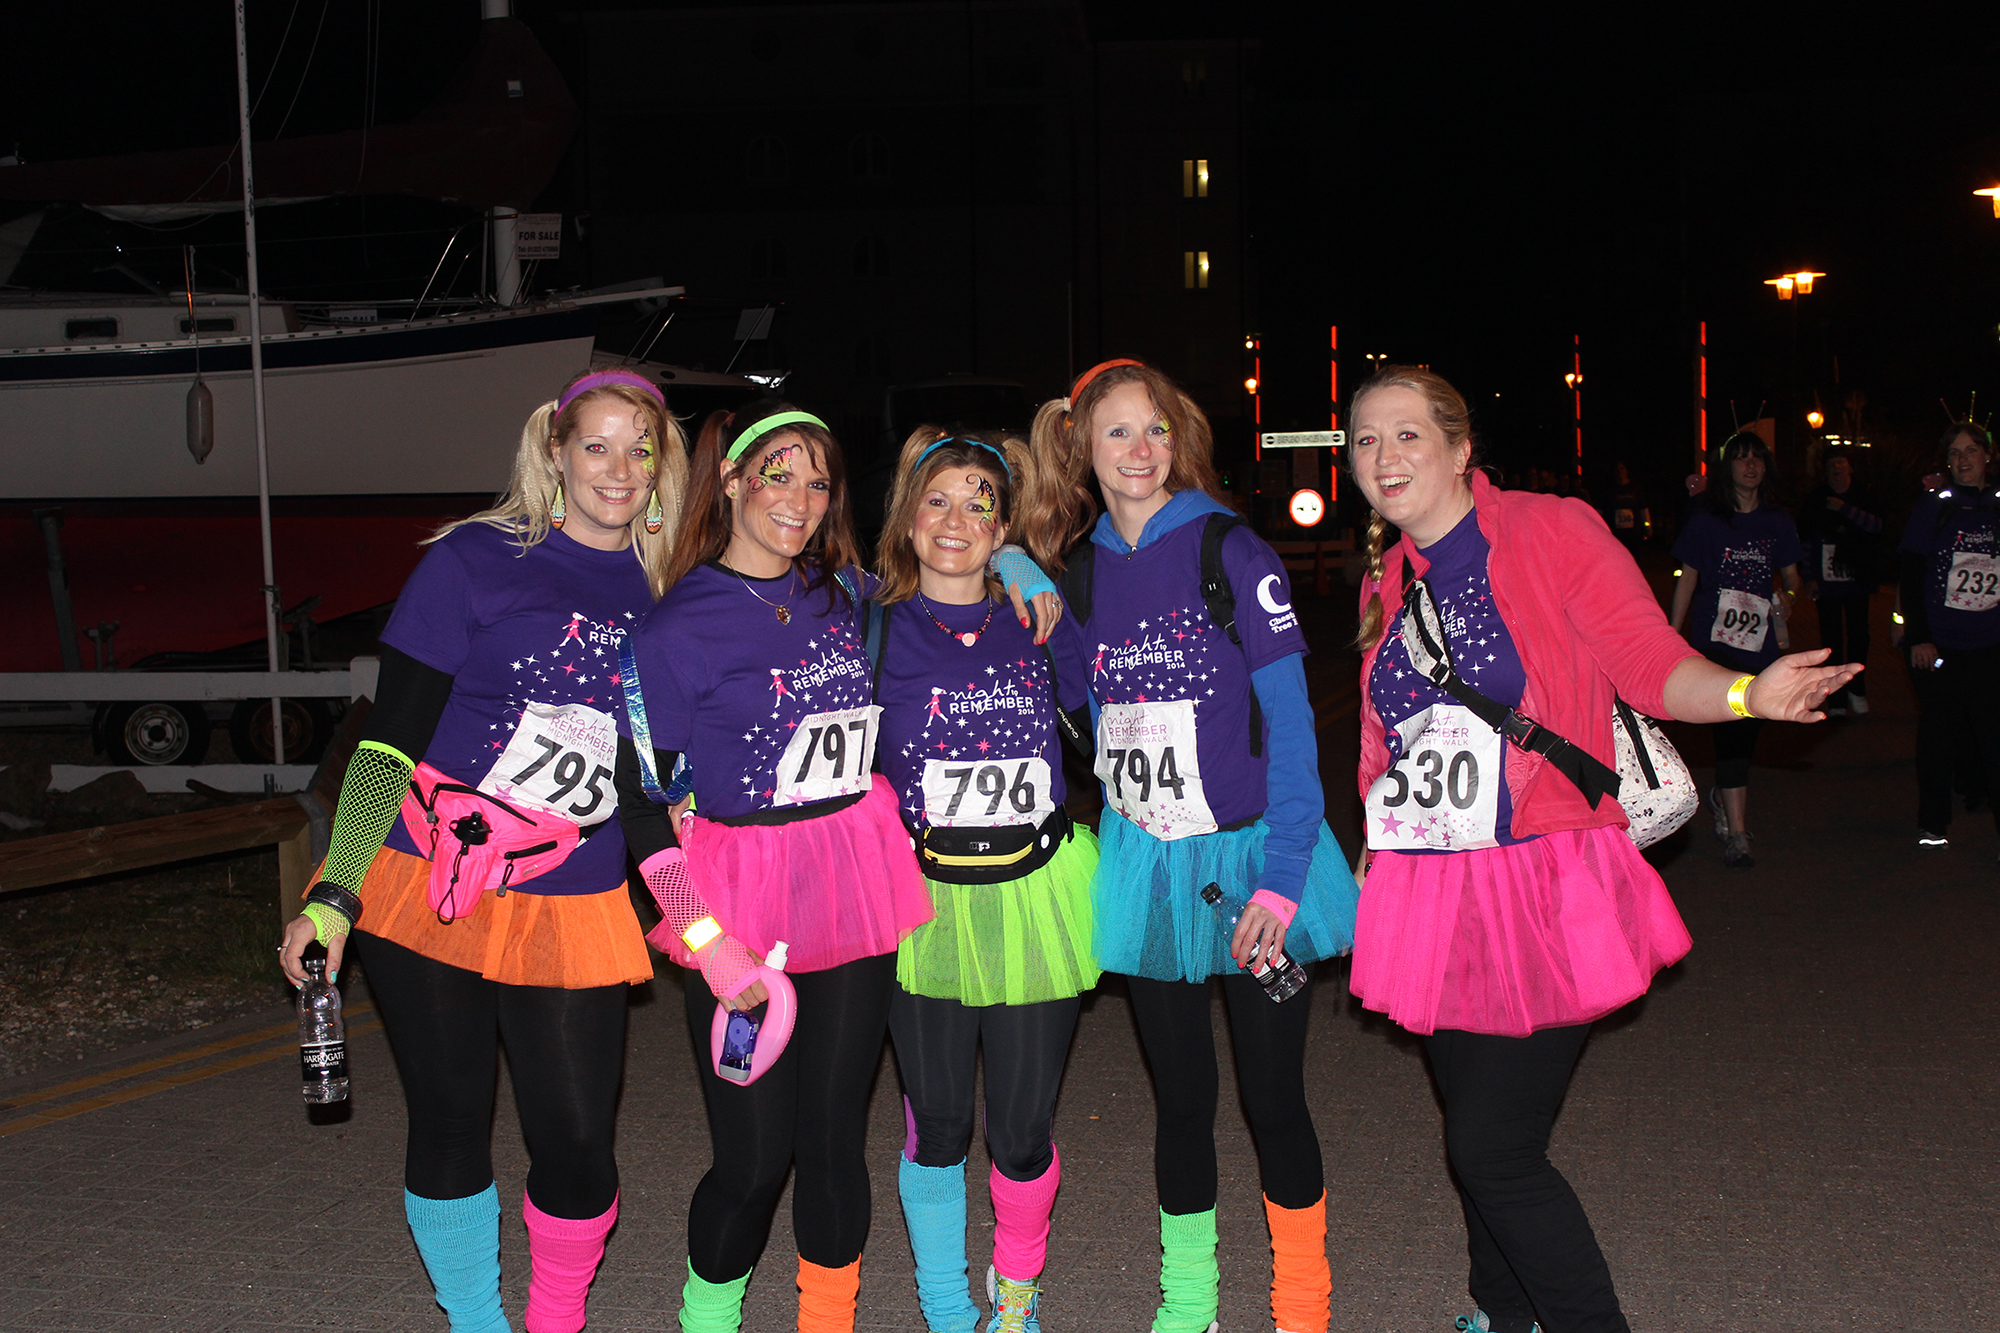 Night to Remember raises thousands for children's hospice